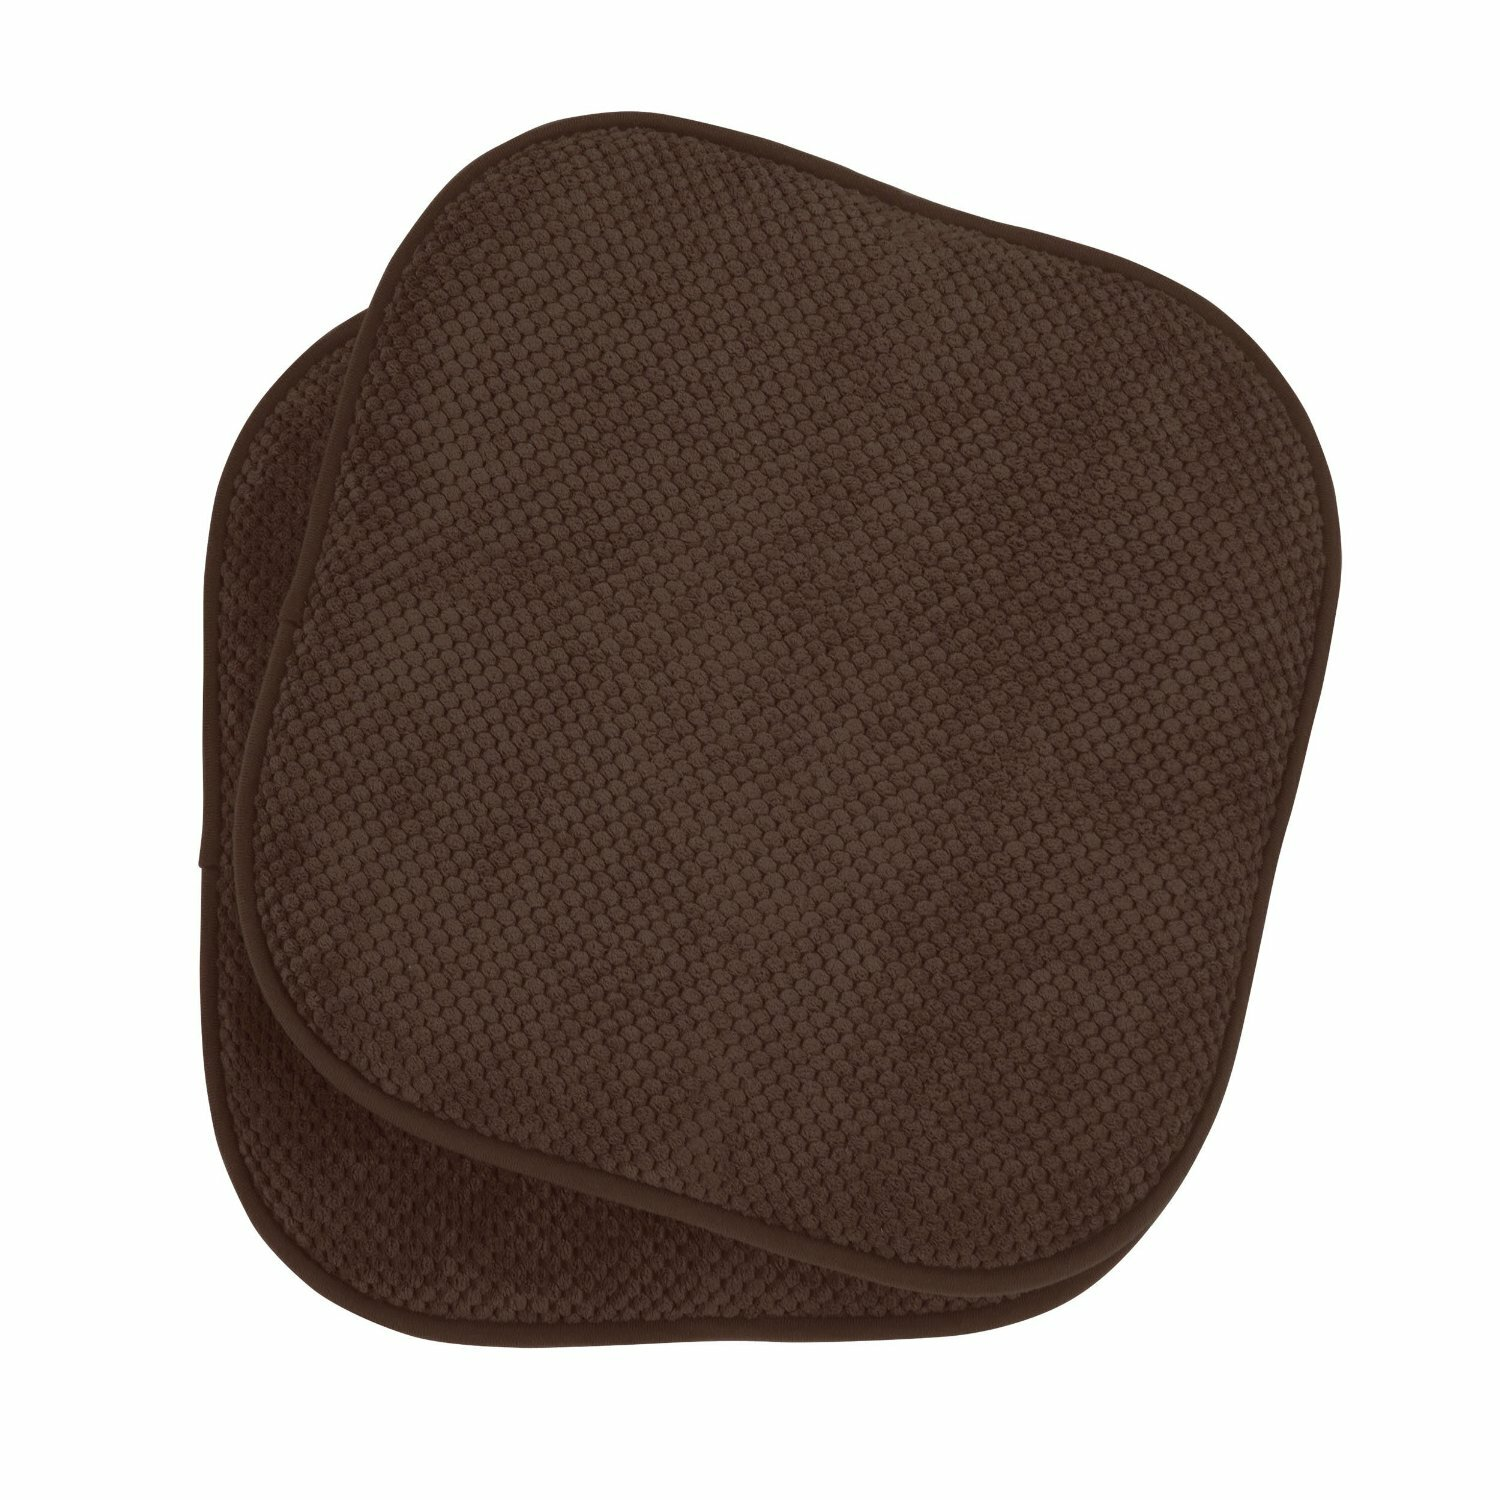 The Final Grab Inc Memory Foam Dining Chair Cushion  : The Final Grab Inc Memory Foam Dining Chair Cushion from www.wayfair.ca size 1500 x 1500 jpeg 304kB